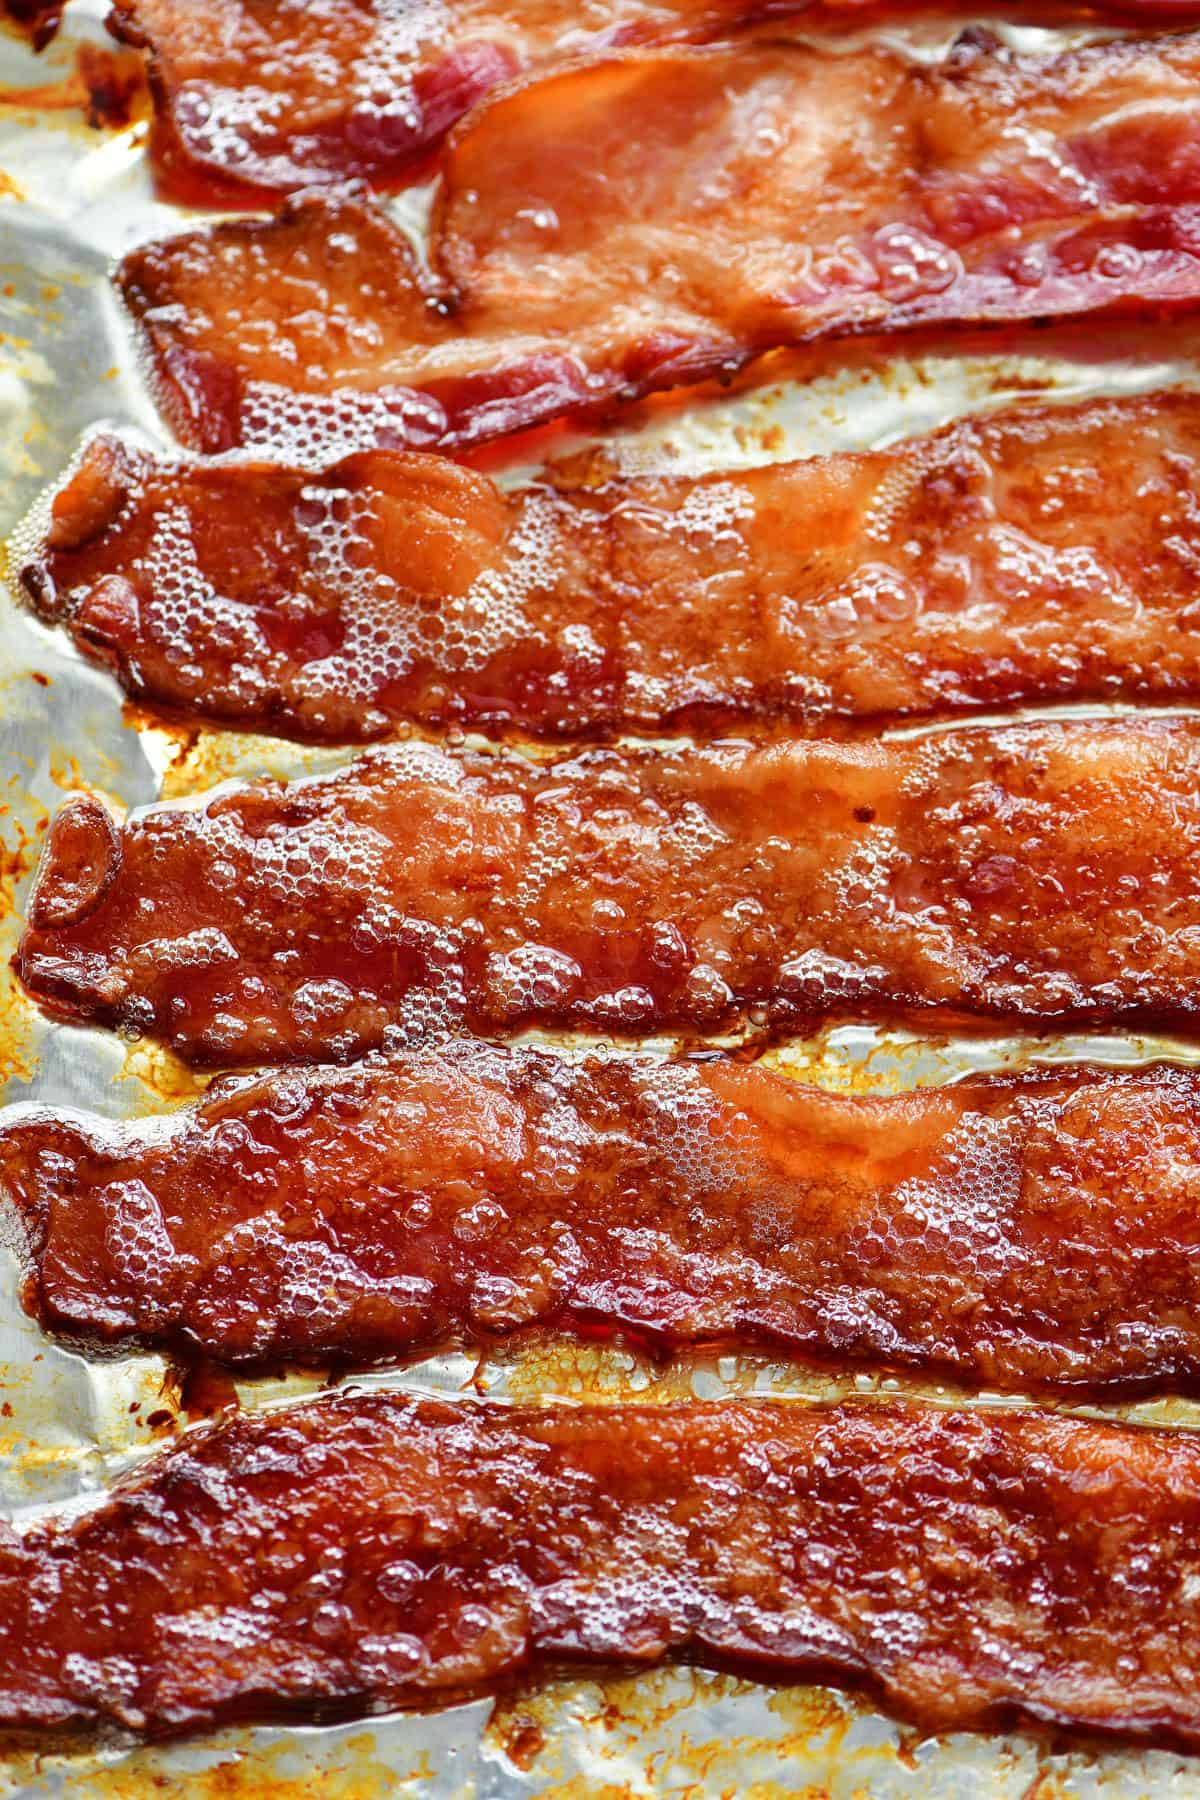 cooked bacon in a baking sheet